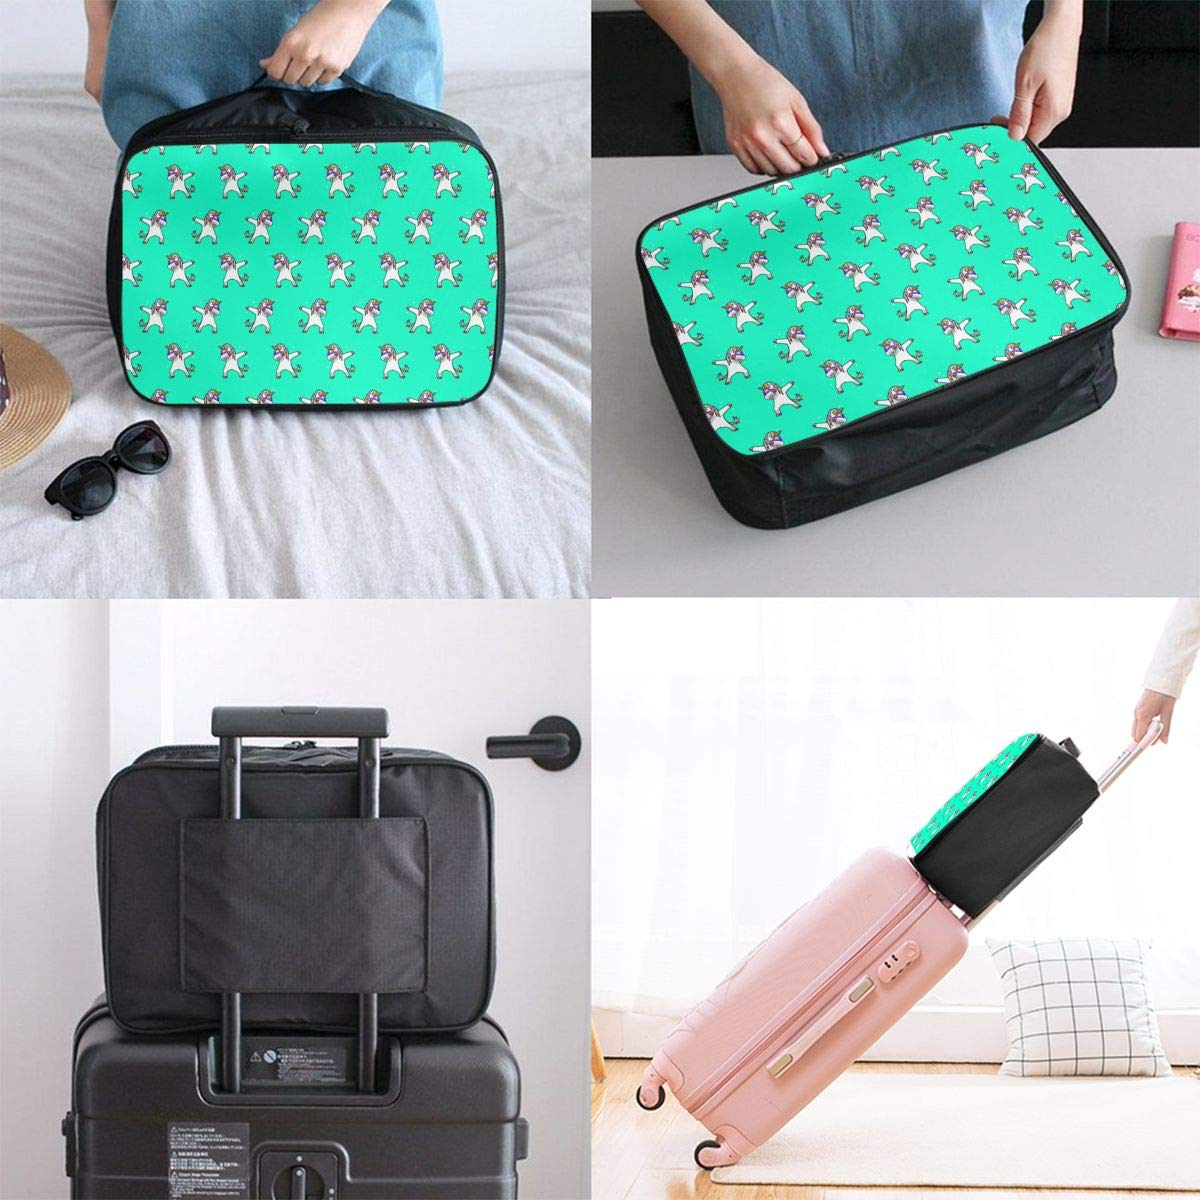 Lightweight Large Capacity Duffel Portable Luggage Bag Hip Hop Dabbing Unicorn Mint Green Travel Waterproof Foldable Storage Carry Tote Bag